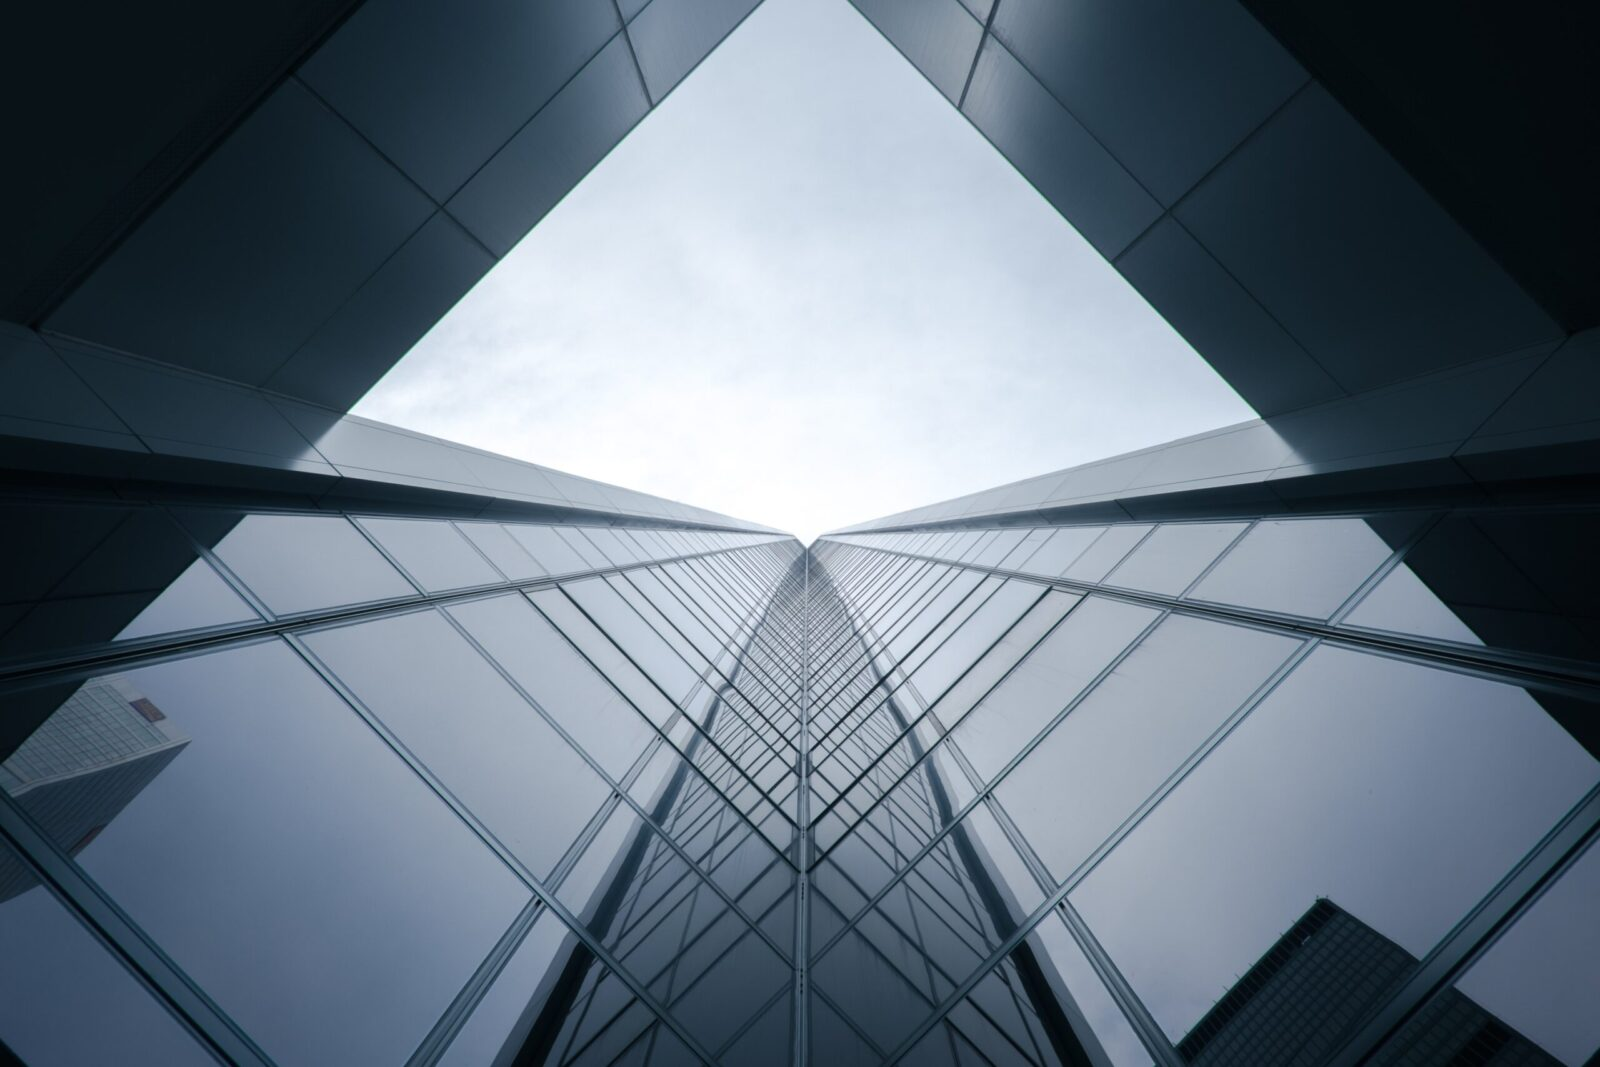 architecture13-scaled-1.jpg